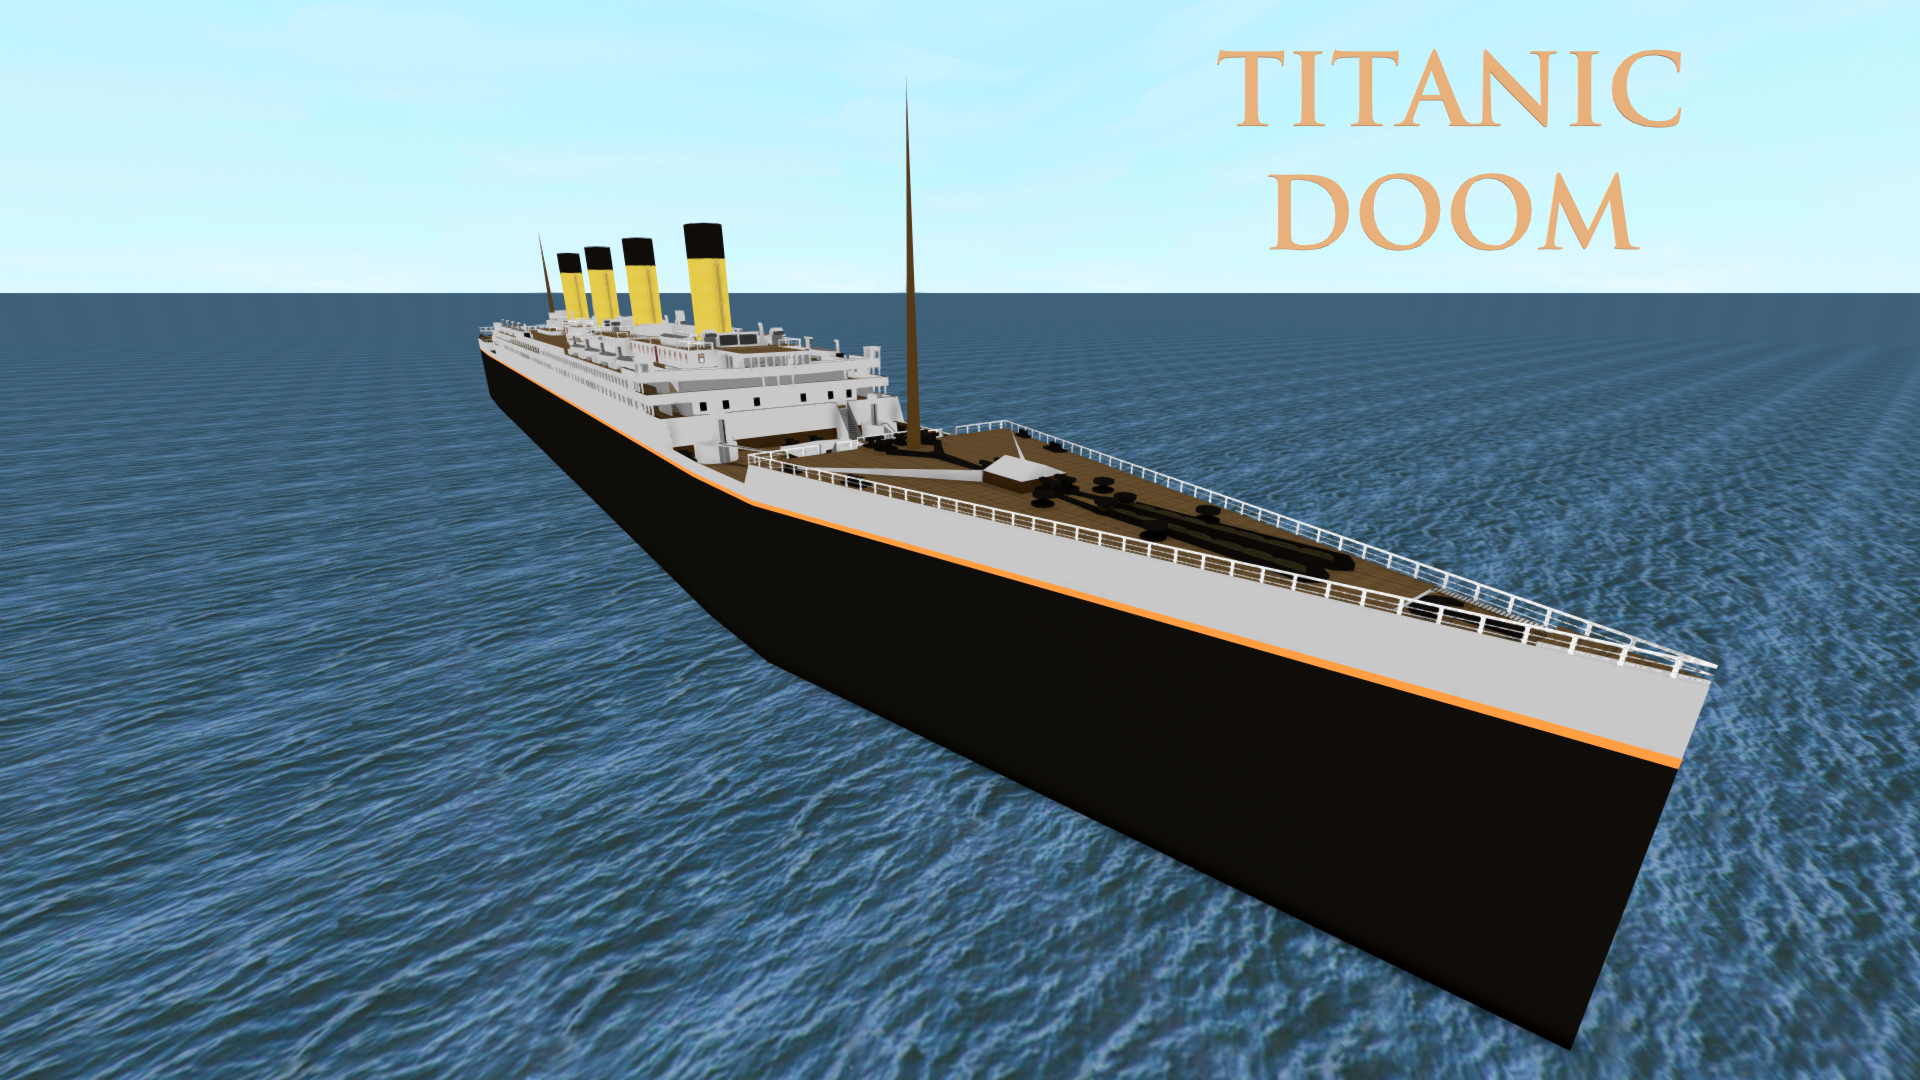 titanicposter2.png.2f787dc4bbd7b628617d0107d5151ebe.png